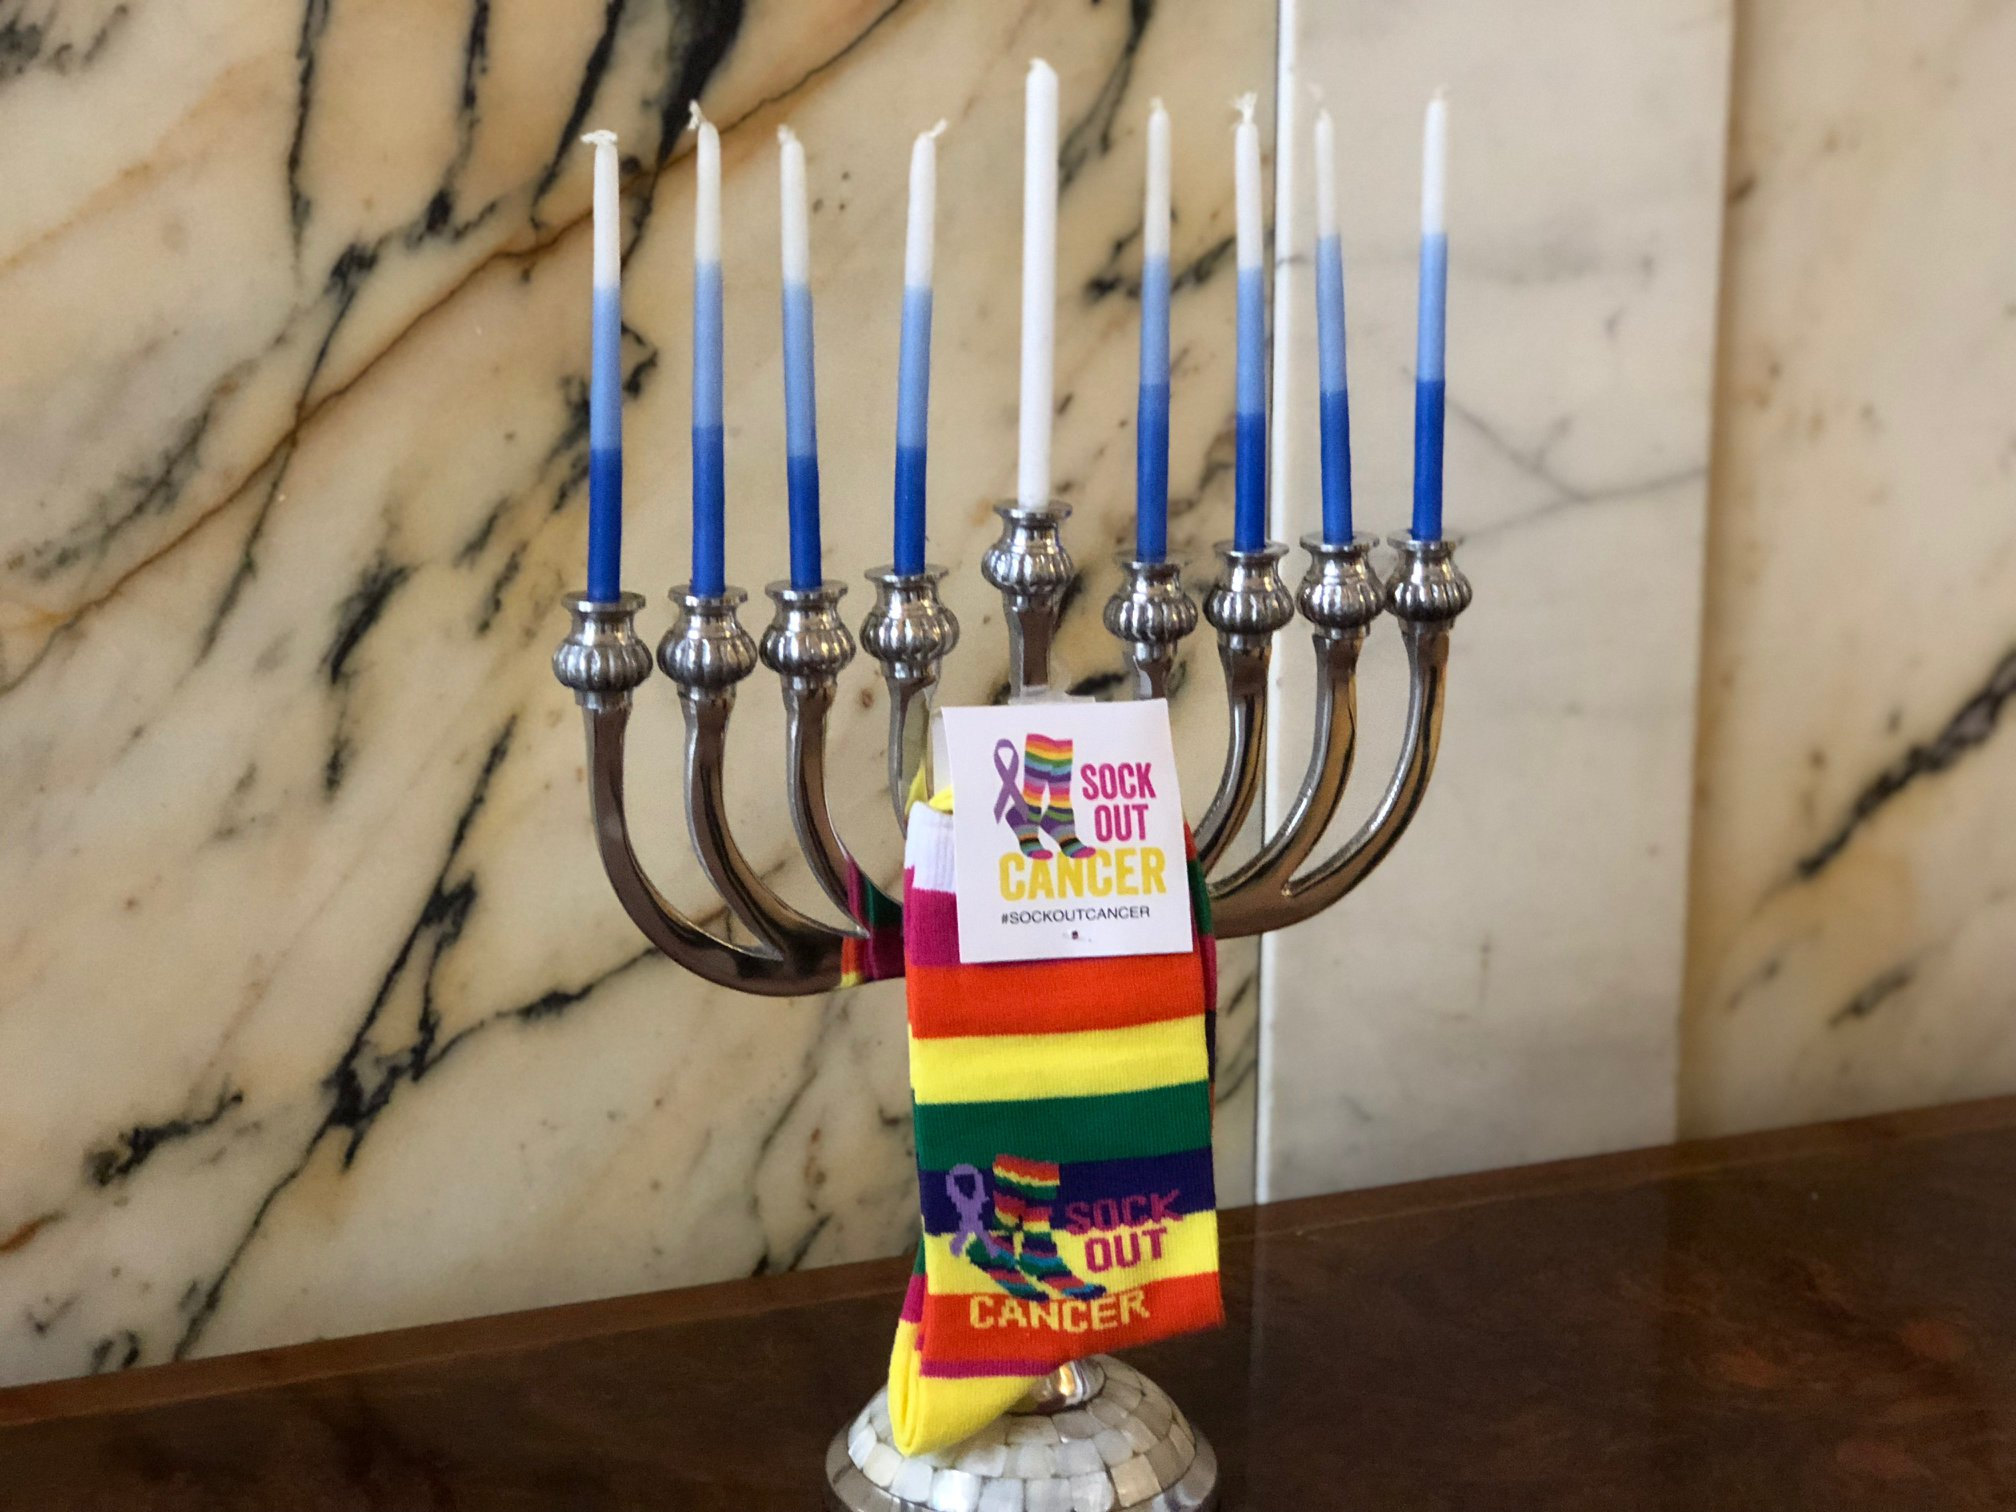 Sock Out Cancer socks and a menorah